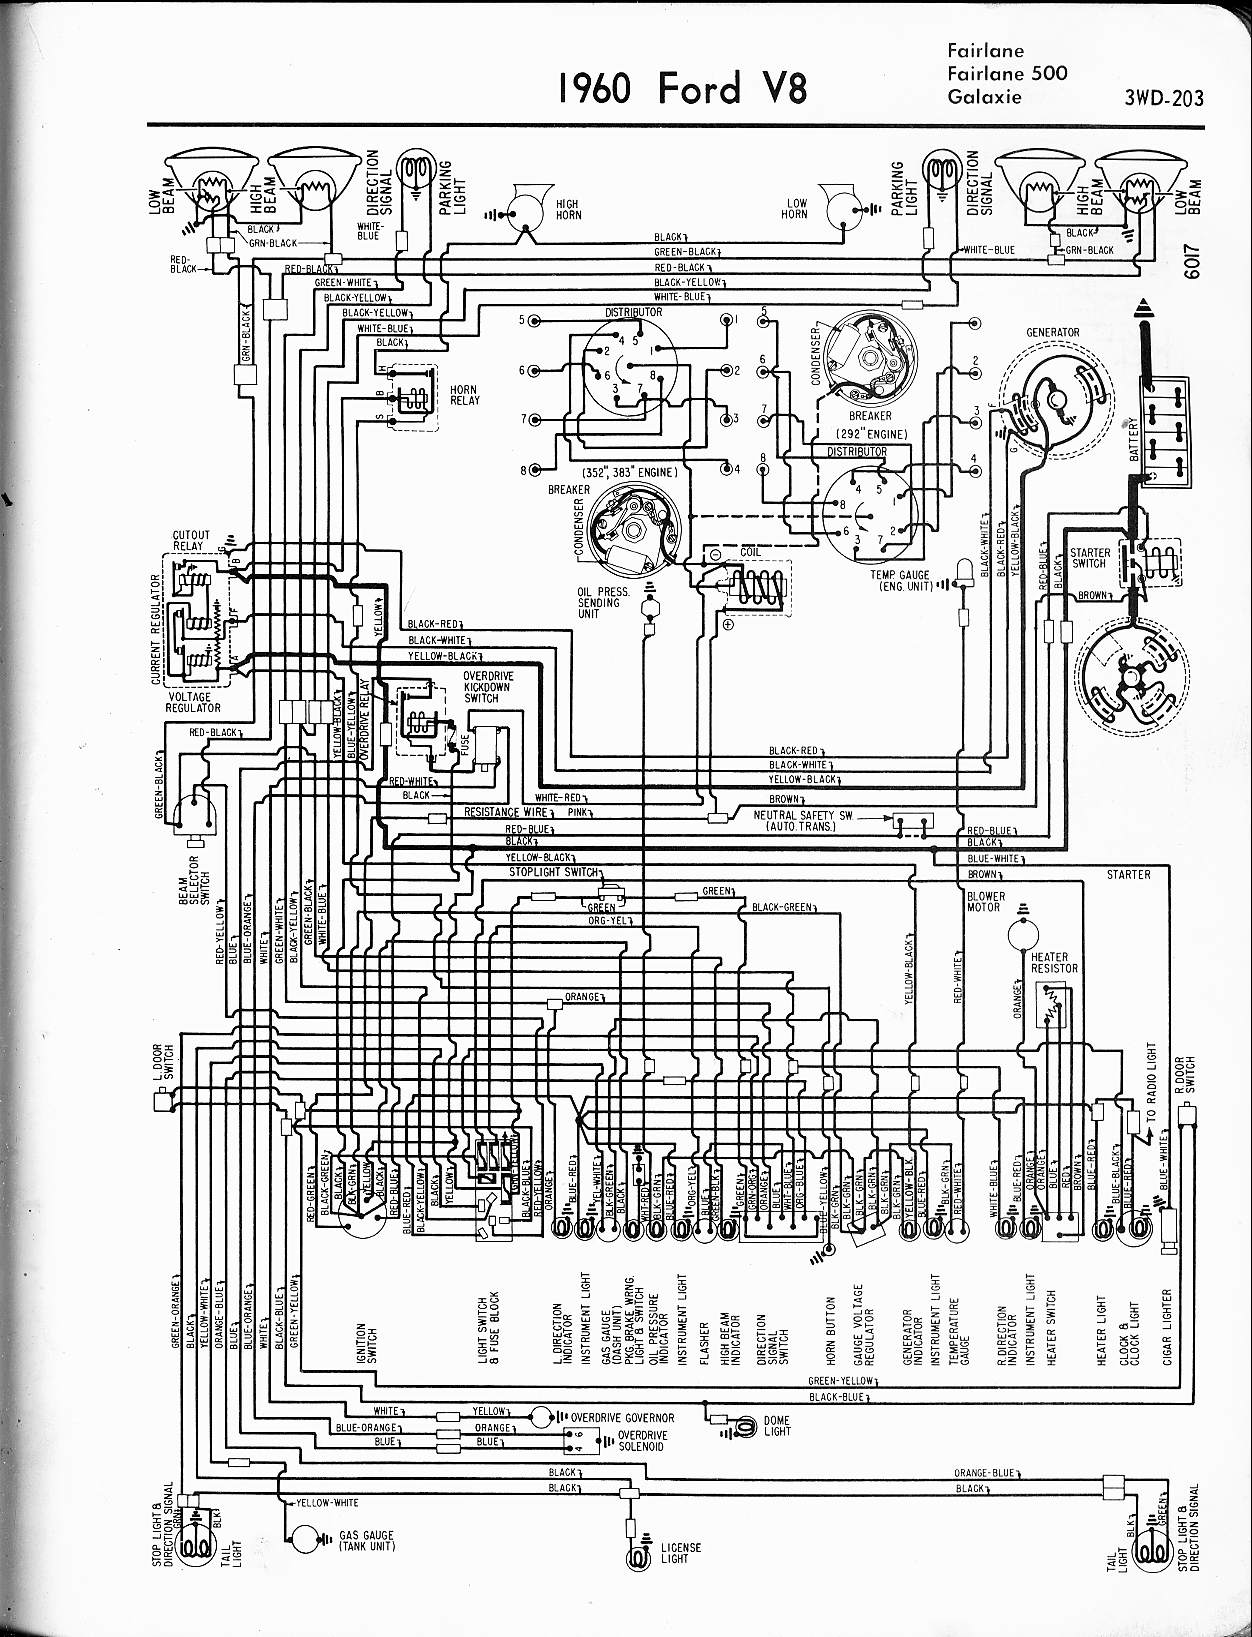 1968 ford fairlane wiring diagram wiring diagram schemaford fairlane torino wiring diagrams wiring diagrams 1966 ford fairlane wiring diagram 1968 ford fairlane wiring diagram